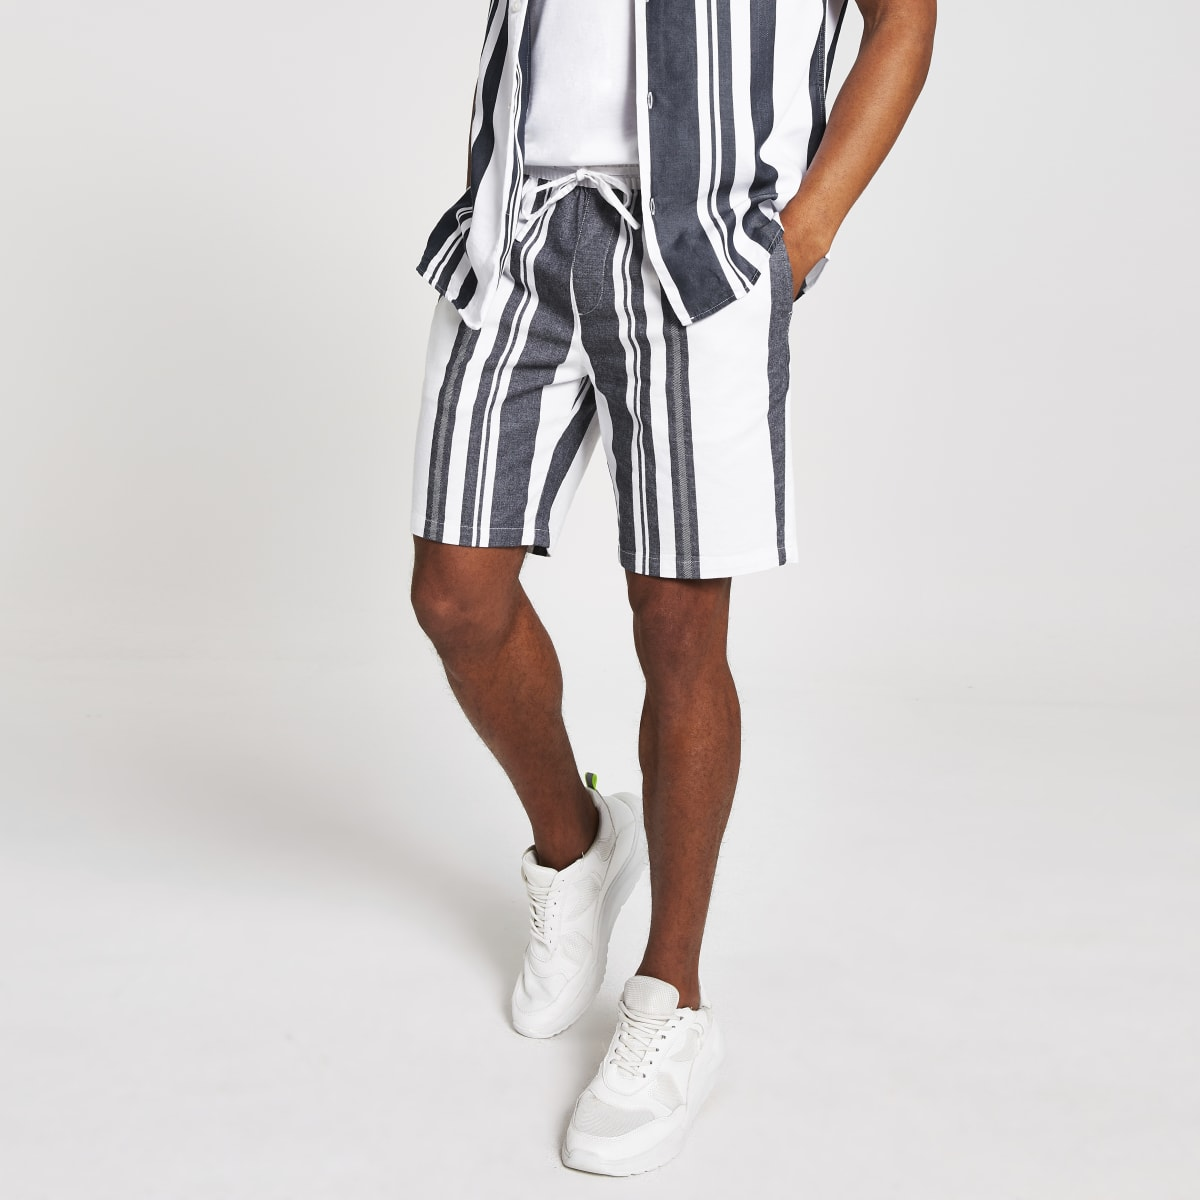 Selected Homme navy stripe shorts